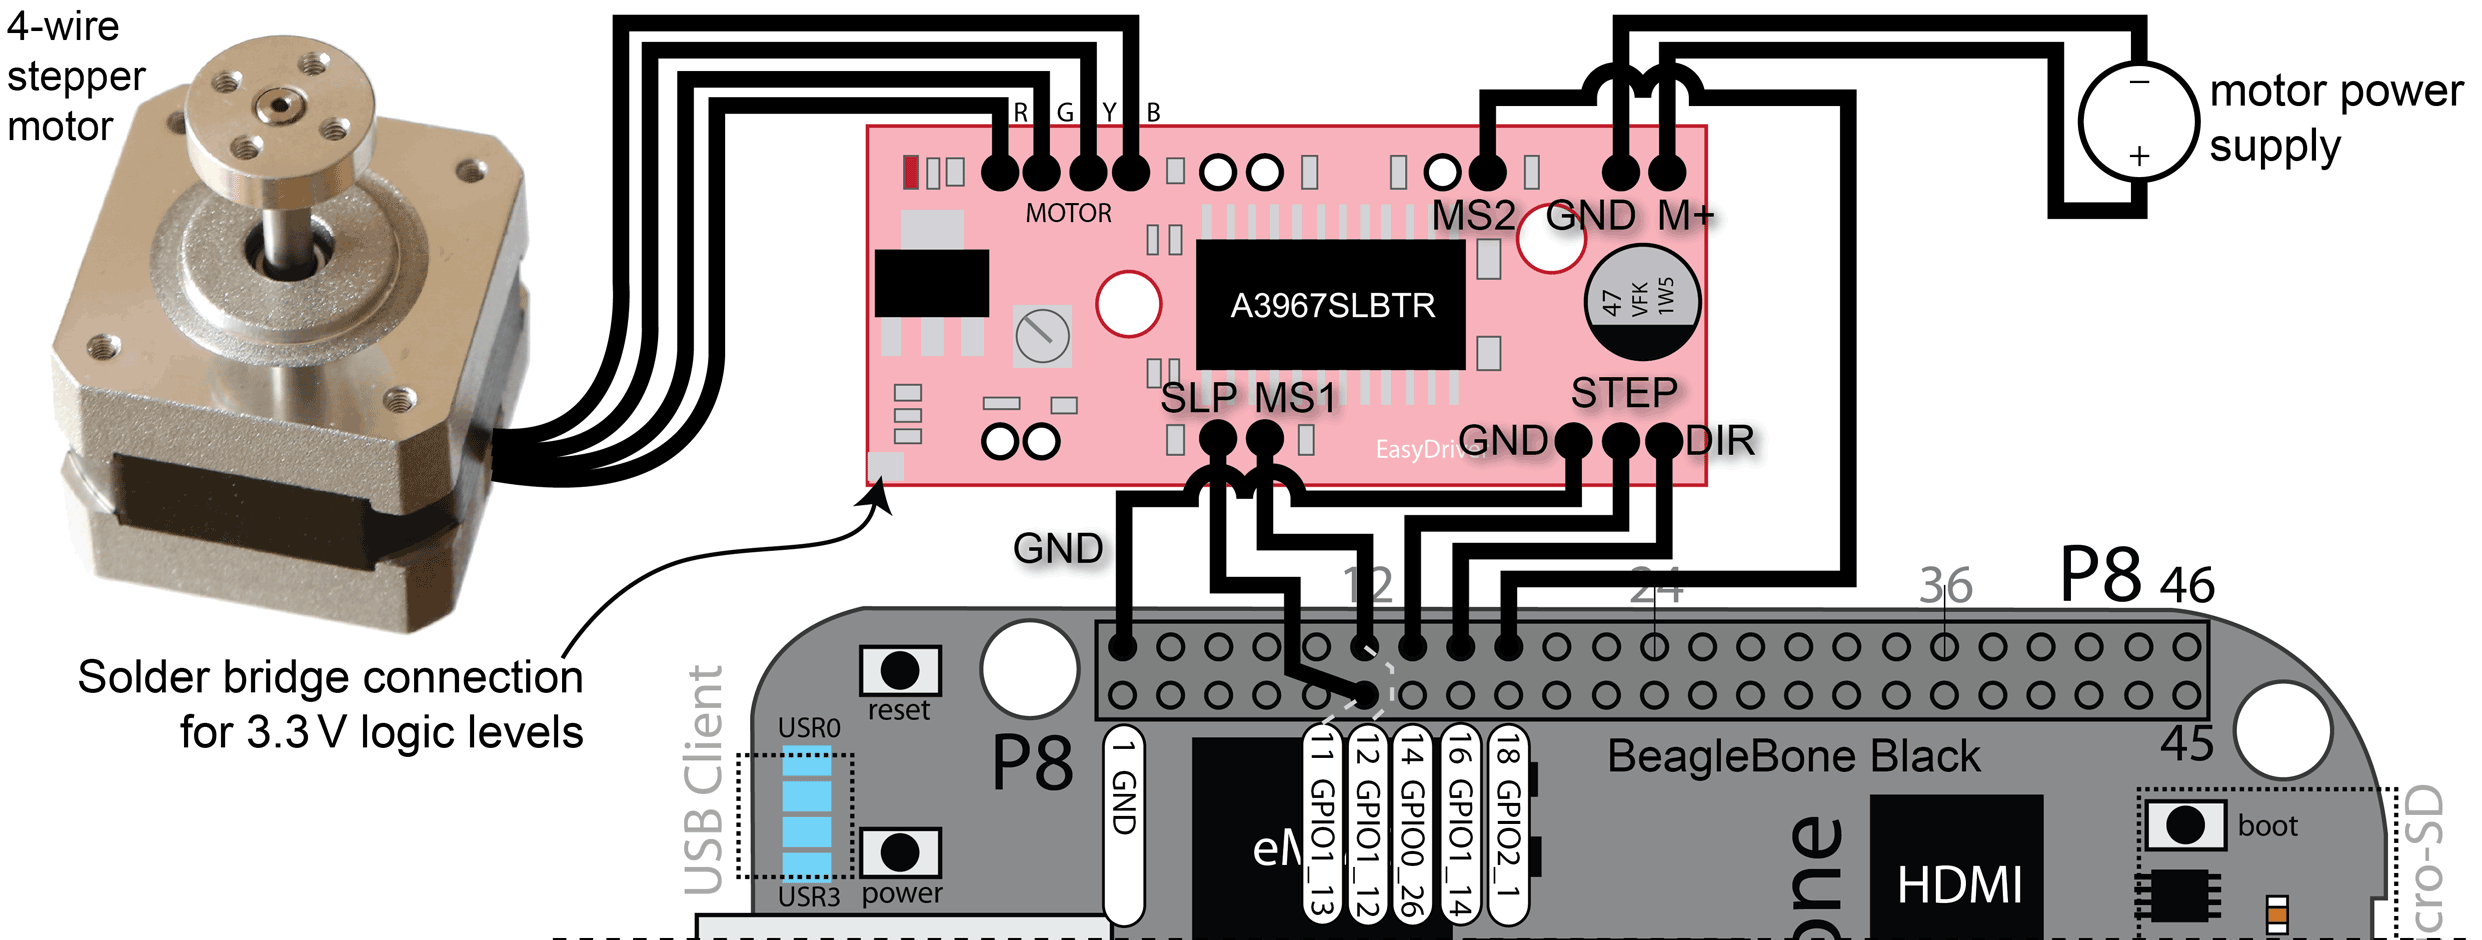 Chapter 9 Interacting With The Physical Environment Exploring Besides Simple Stepper Motor Controller Further Wireless Of More Complex Figures In This Which May Help You Wiring Circuits Please Note That Can Close Pop Up Window By Pressing